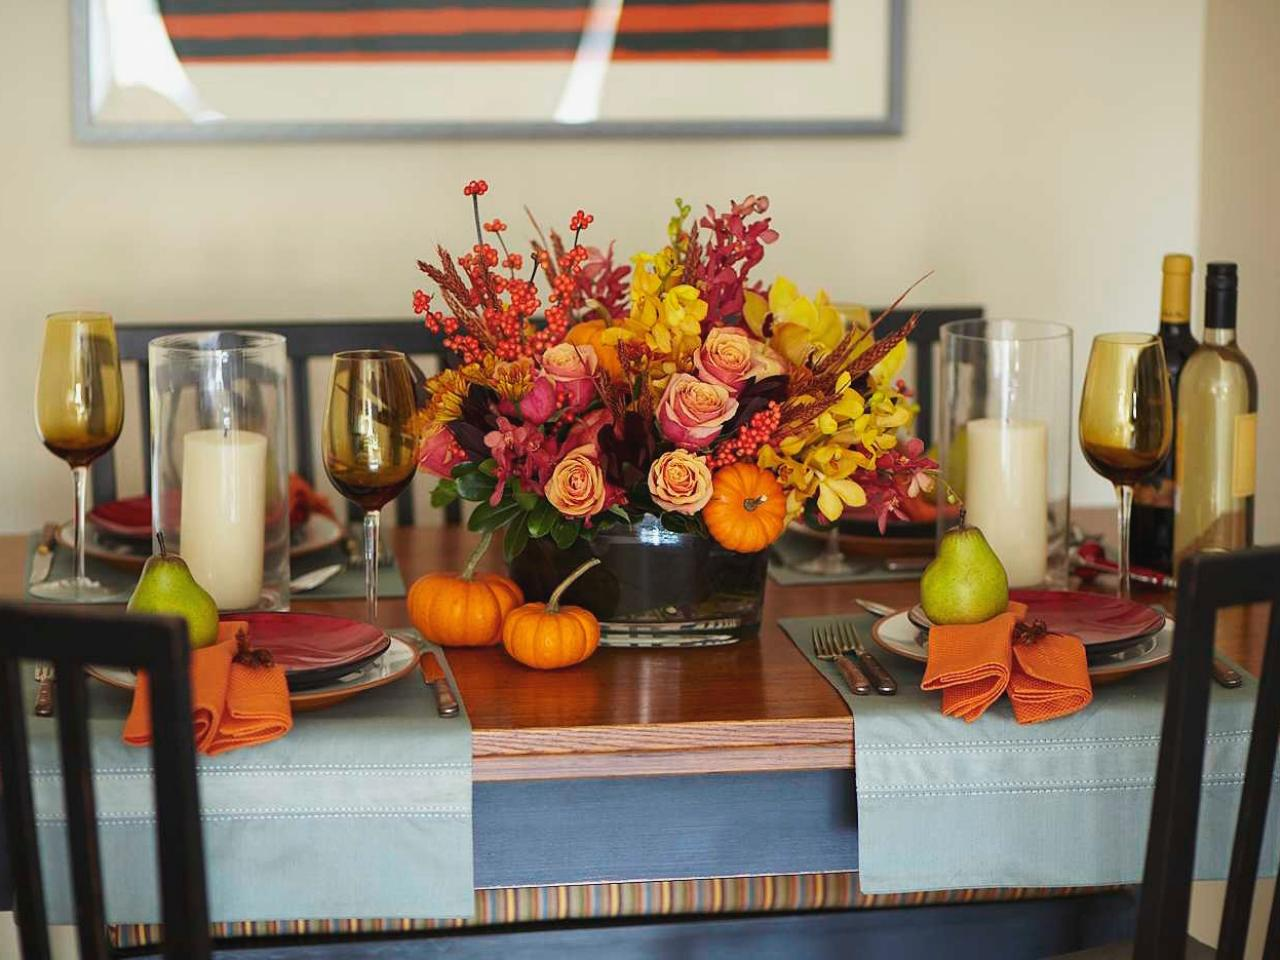 Unique Ideas to Up Your Hosting Game This Thanksgiving - Quicken Loans Zing Blog